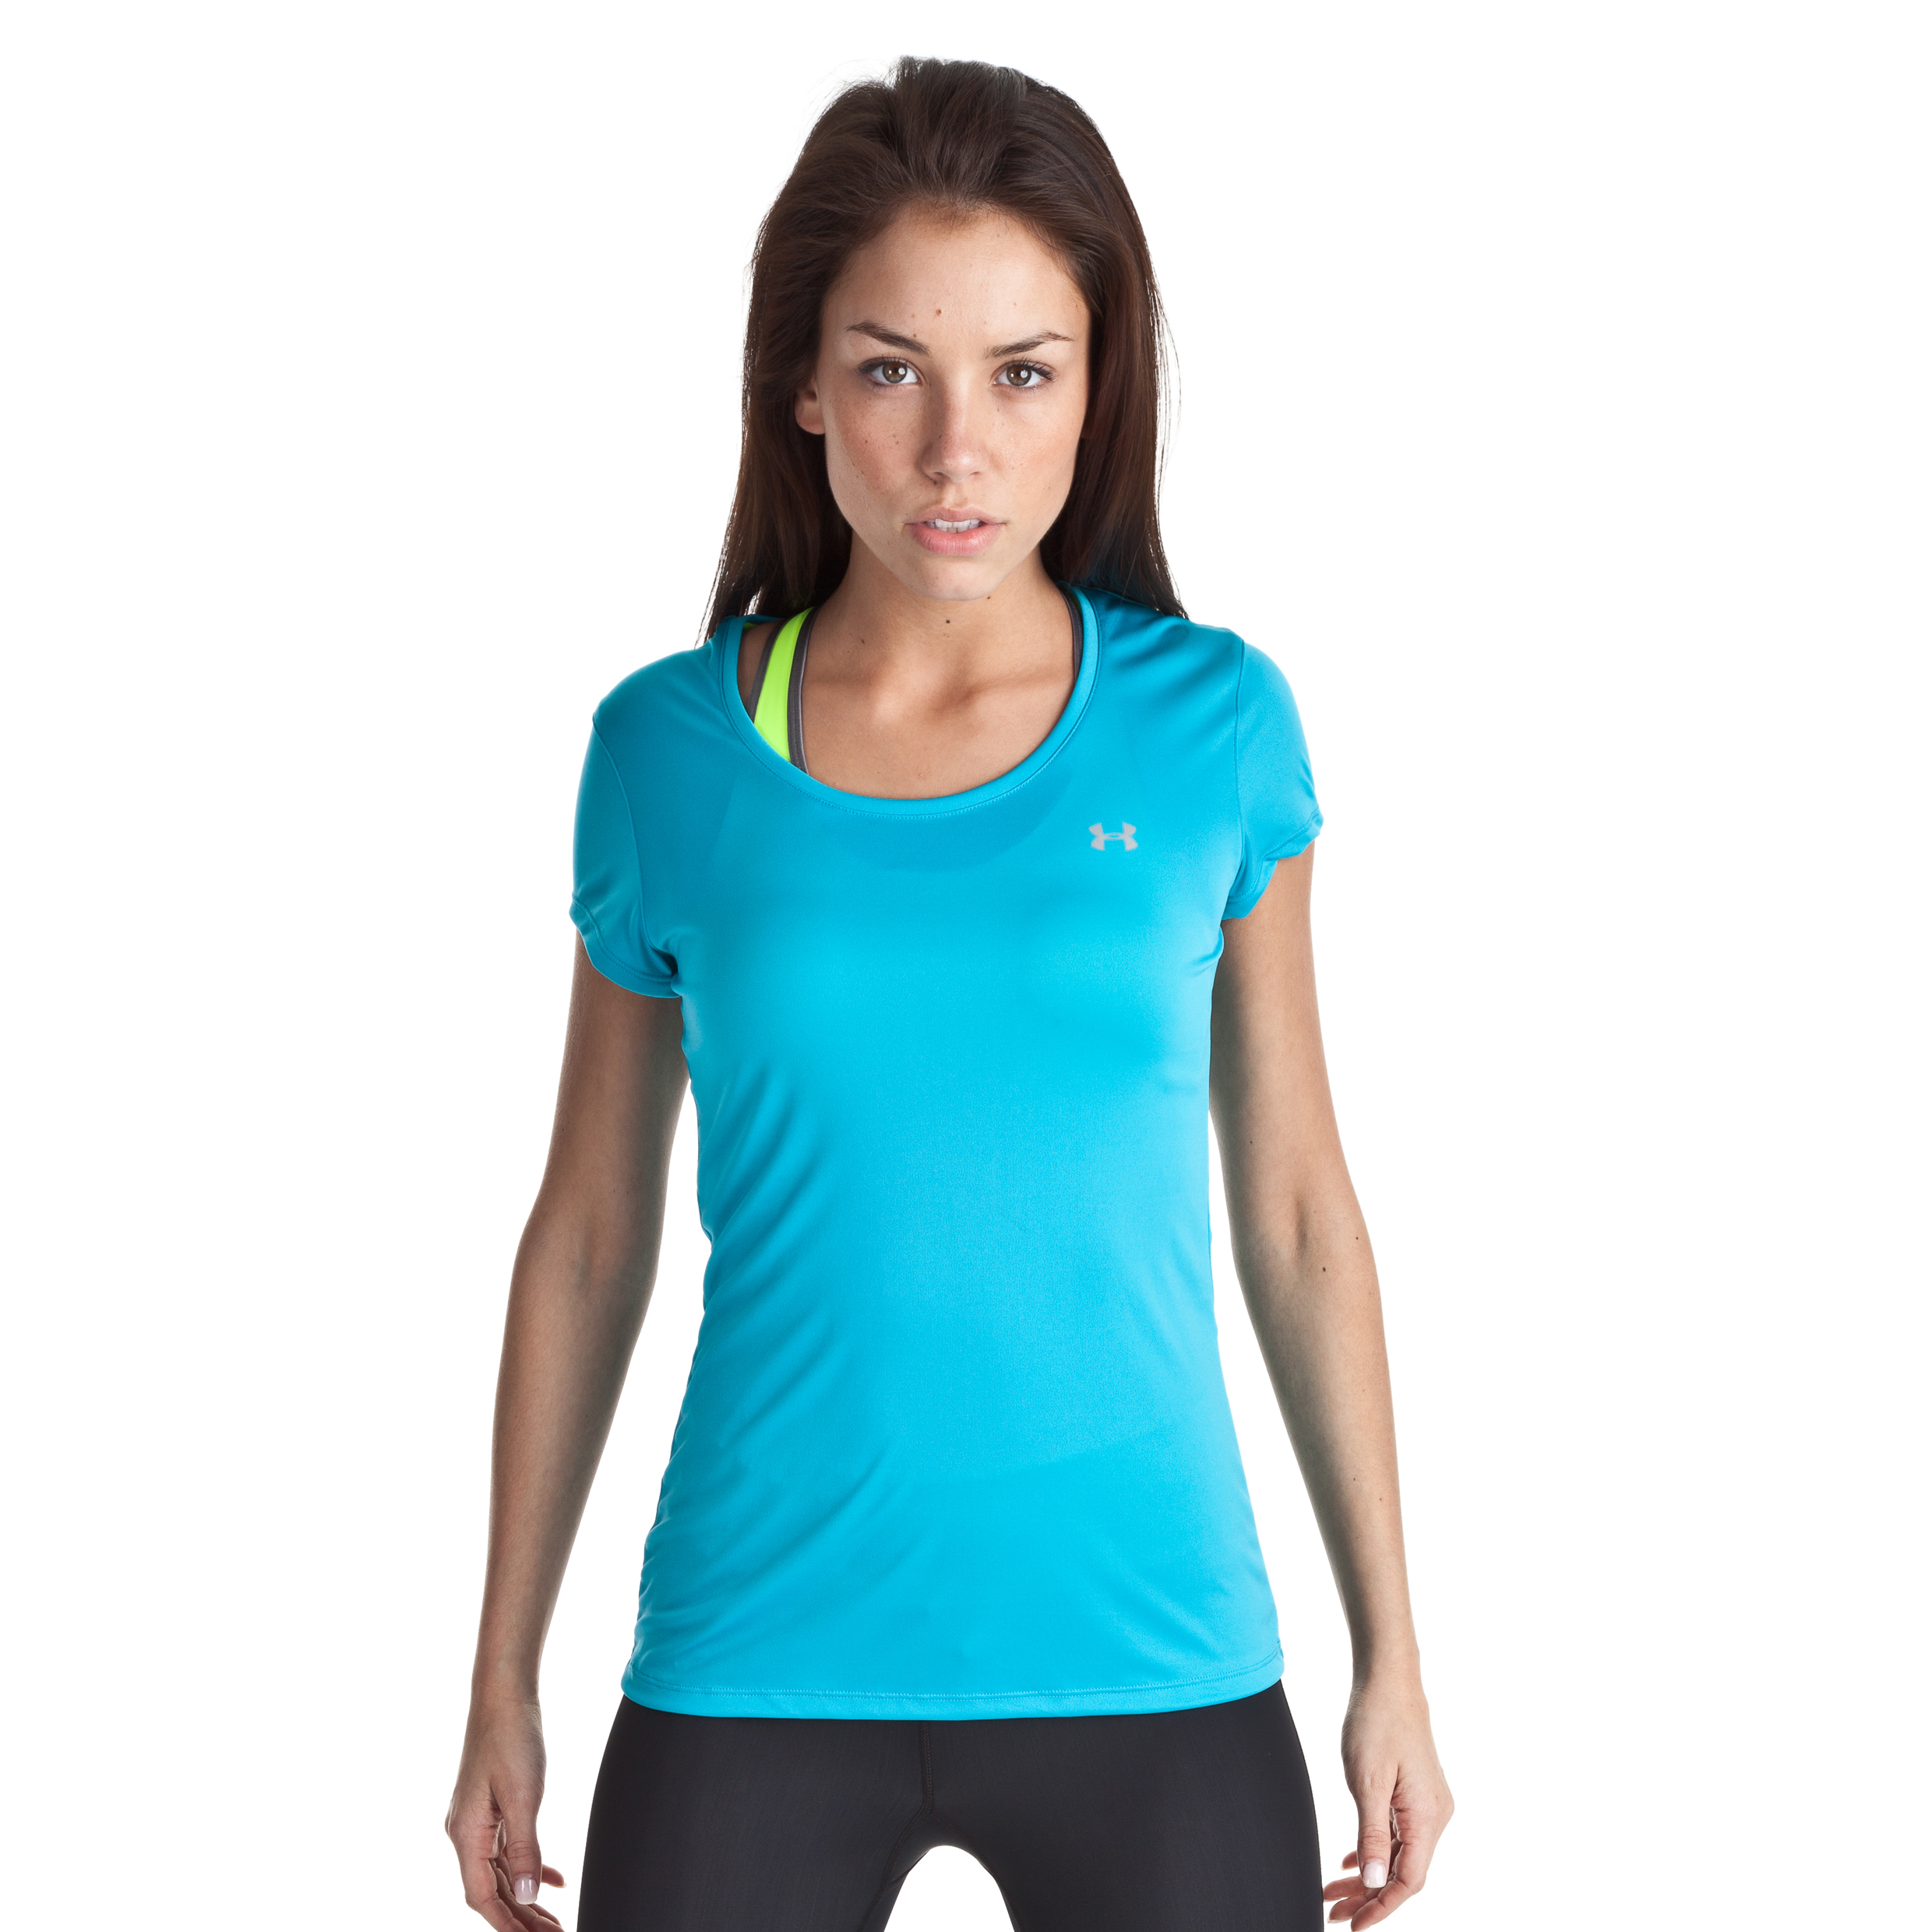 Under Armour Heat Gear Flyweight Tee - Deceit/Reflective - Womens